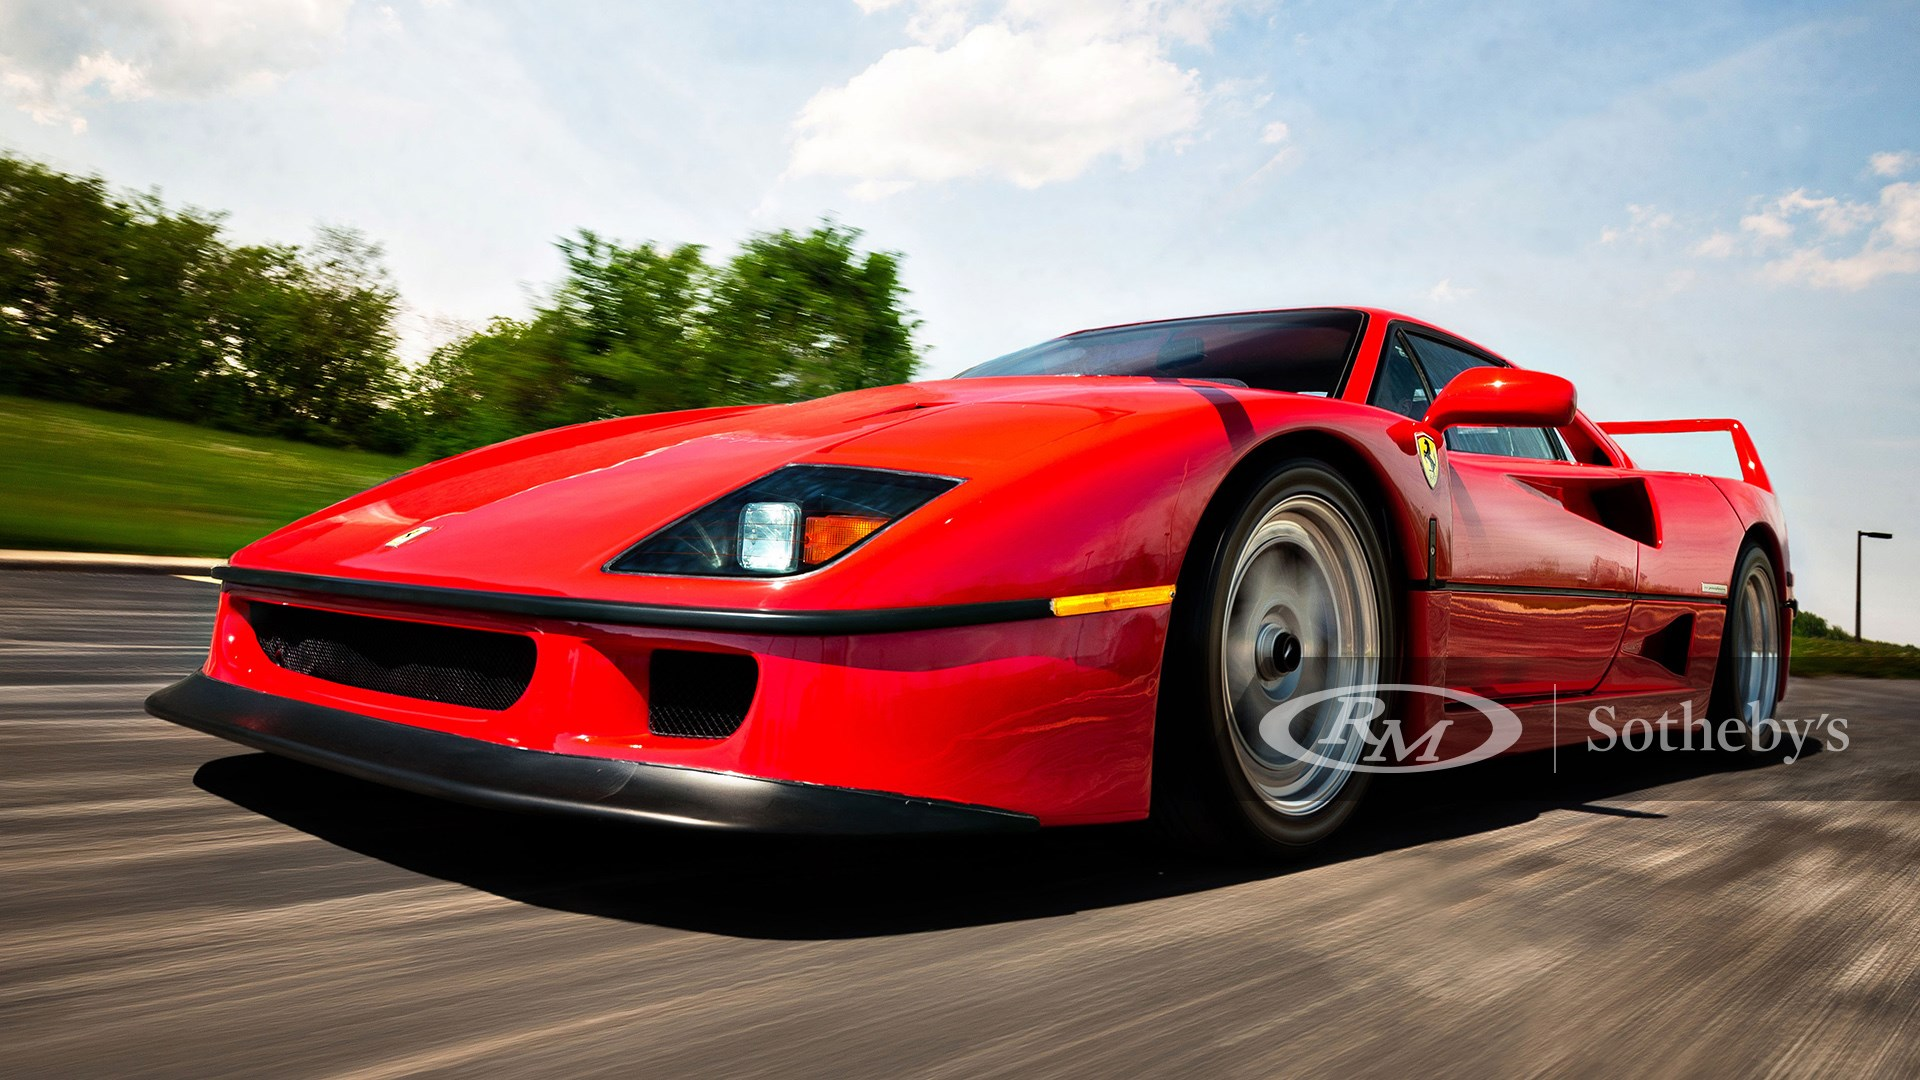 Rosso Corsa 1992 Ferrari F40 available at RM Sotheby's Amelia Island Live Auction 2021